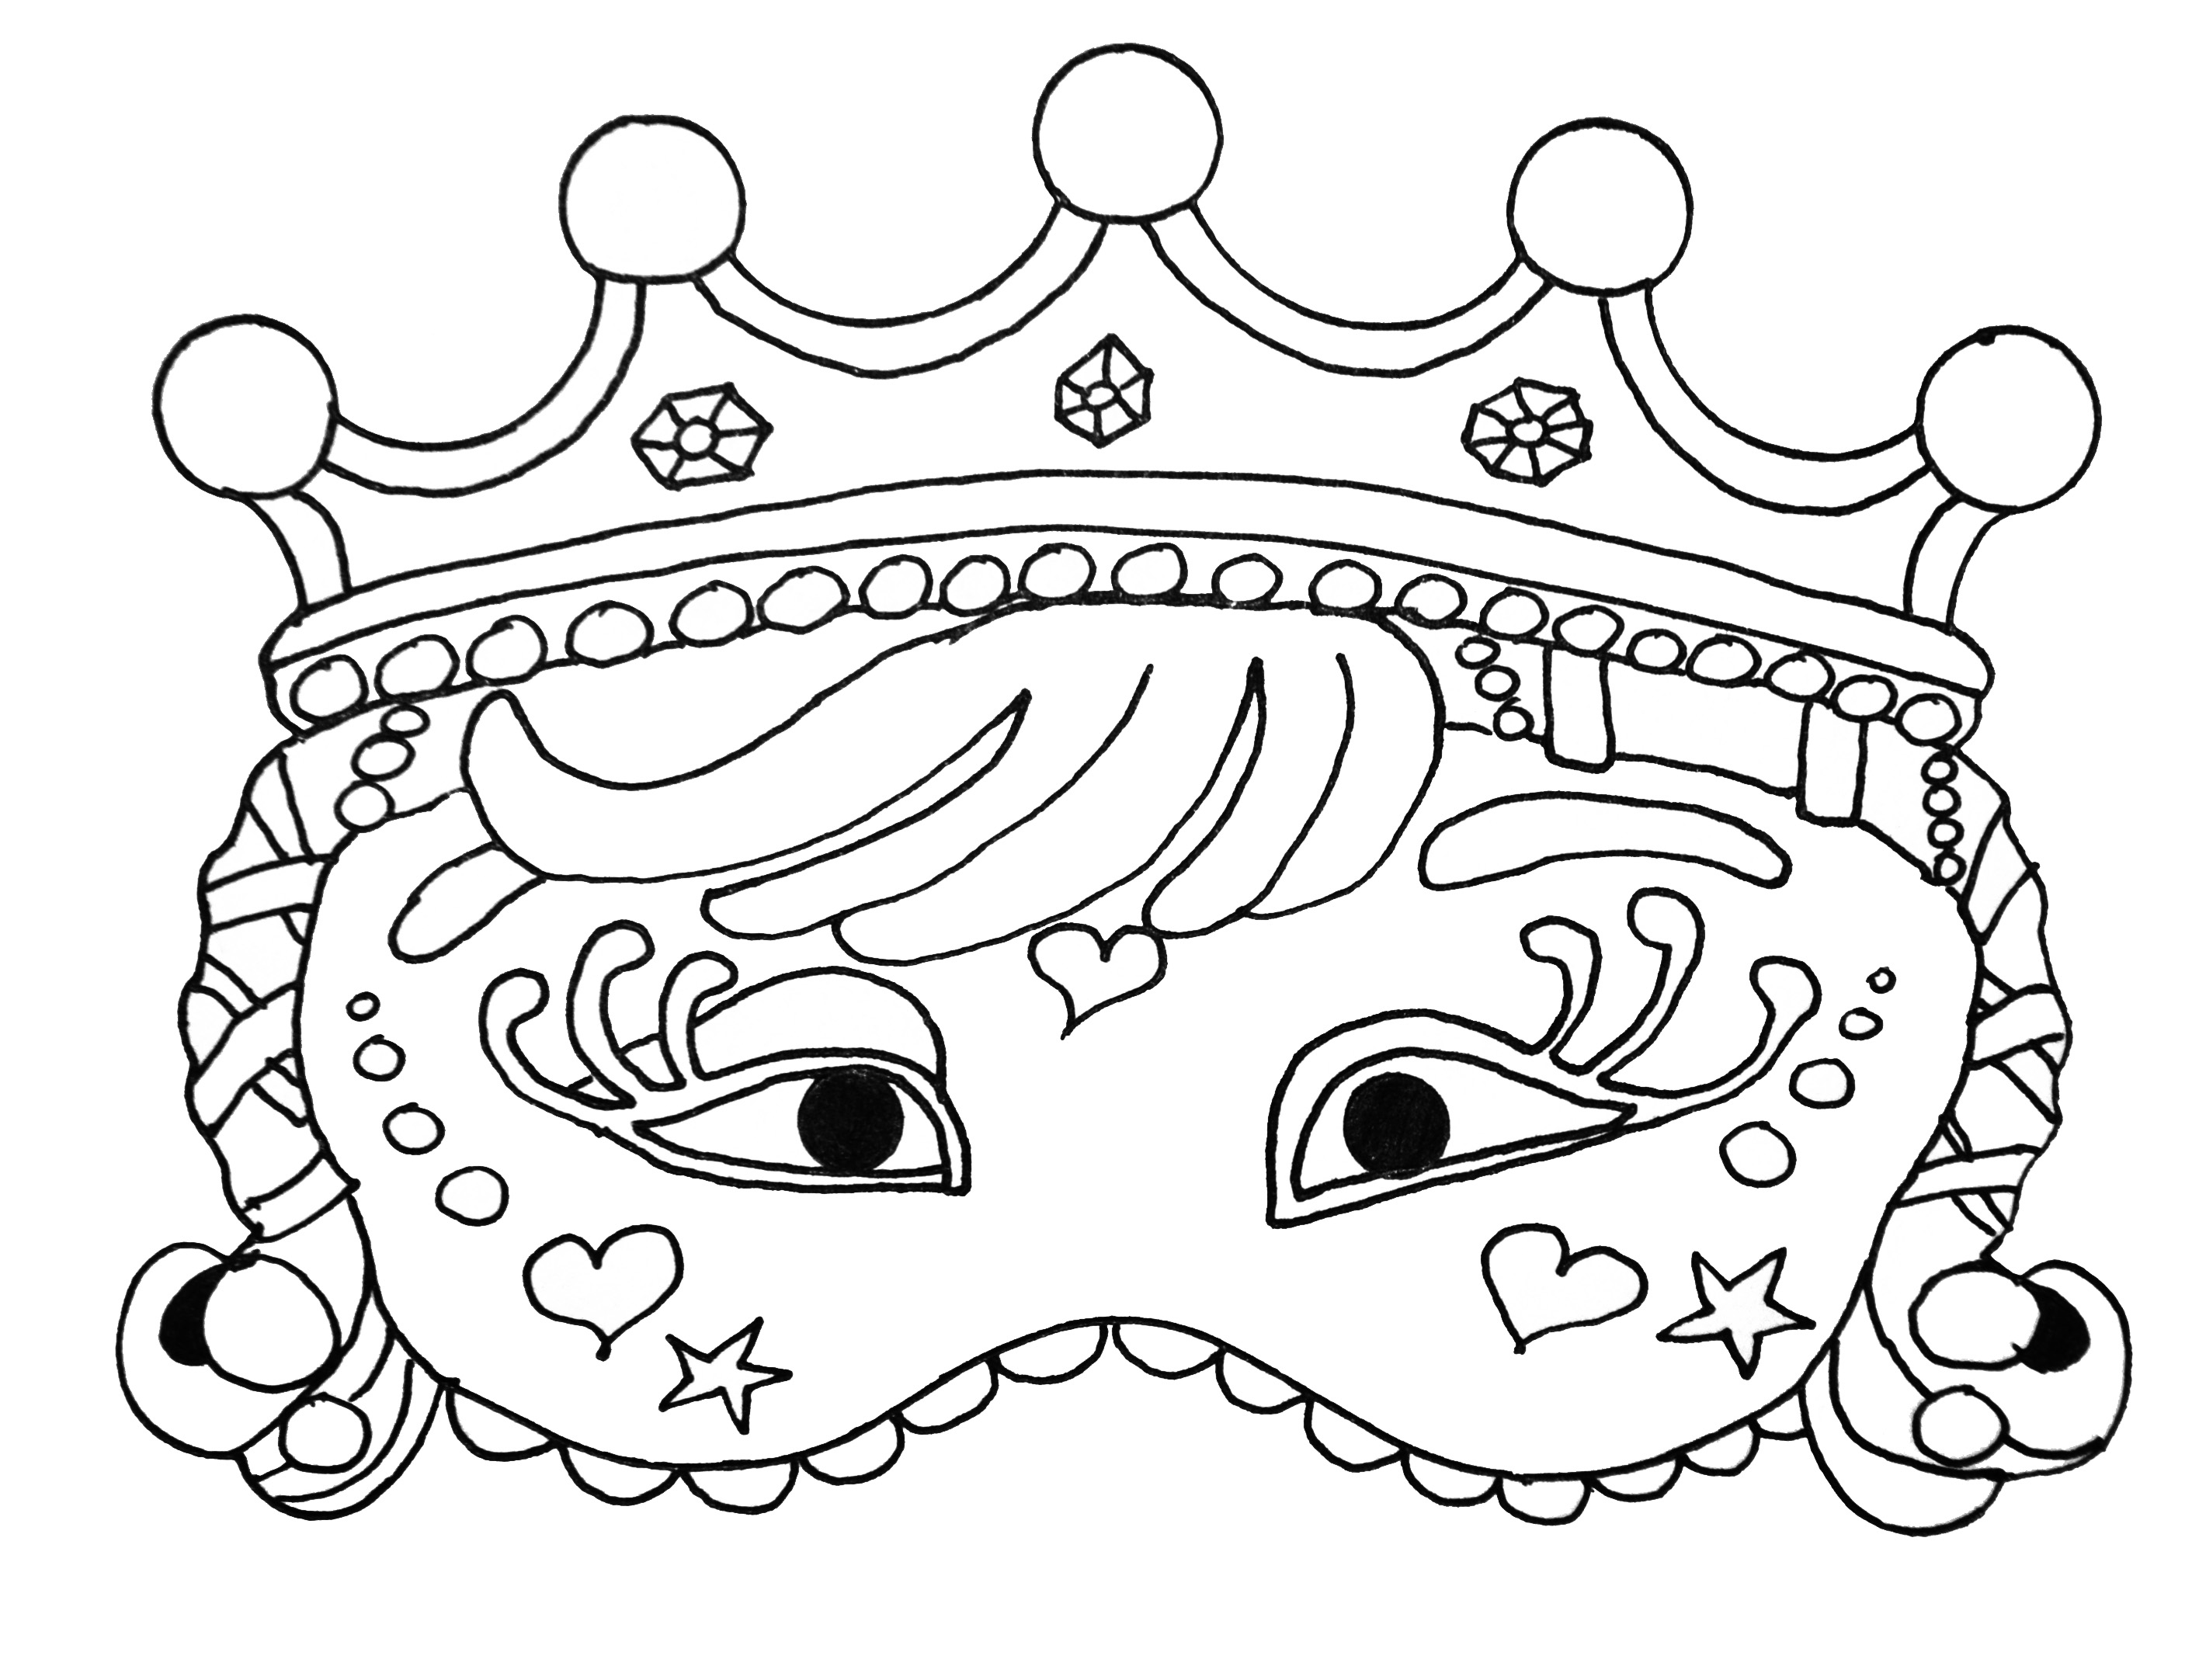 Carnival Mask For Kid 3 Masks Coloring Pages For Kids To Print